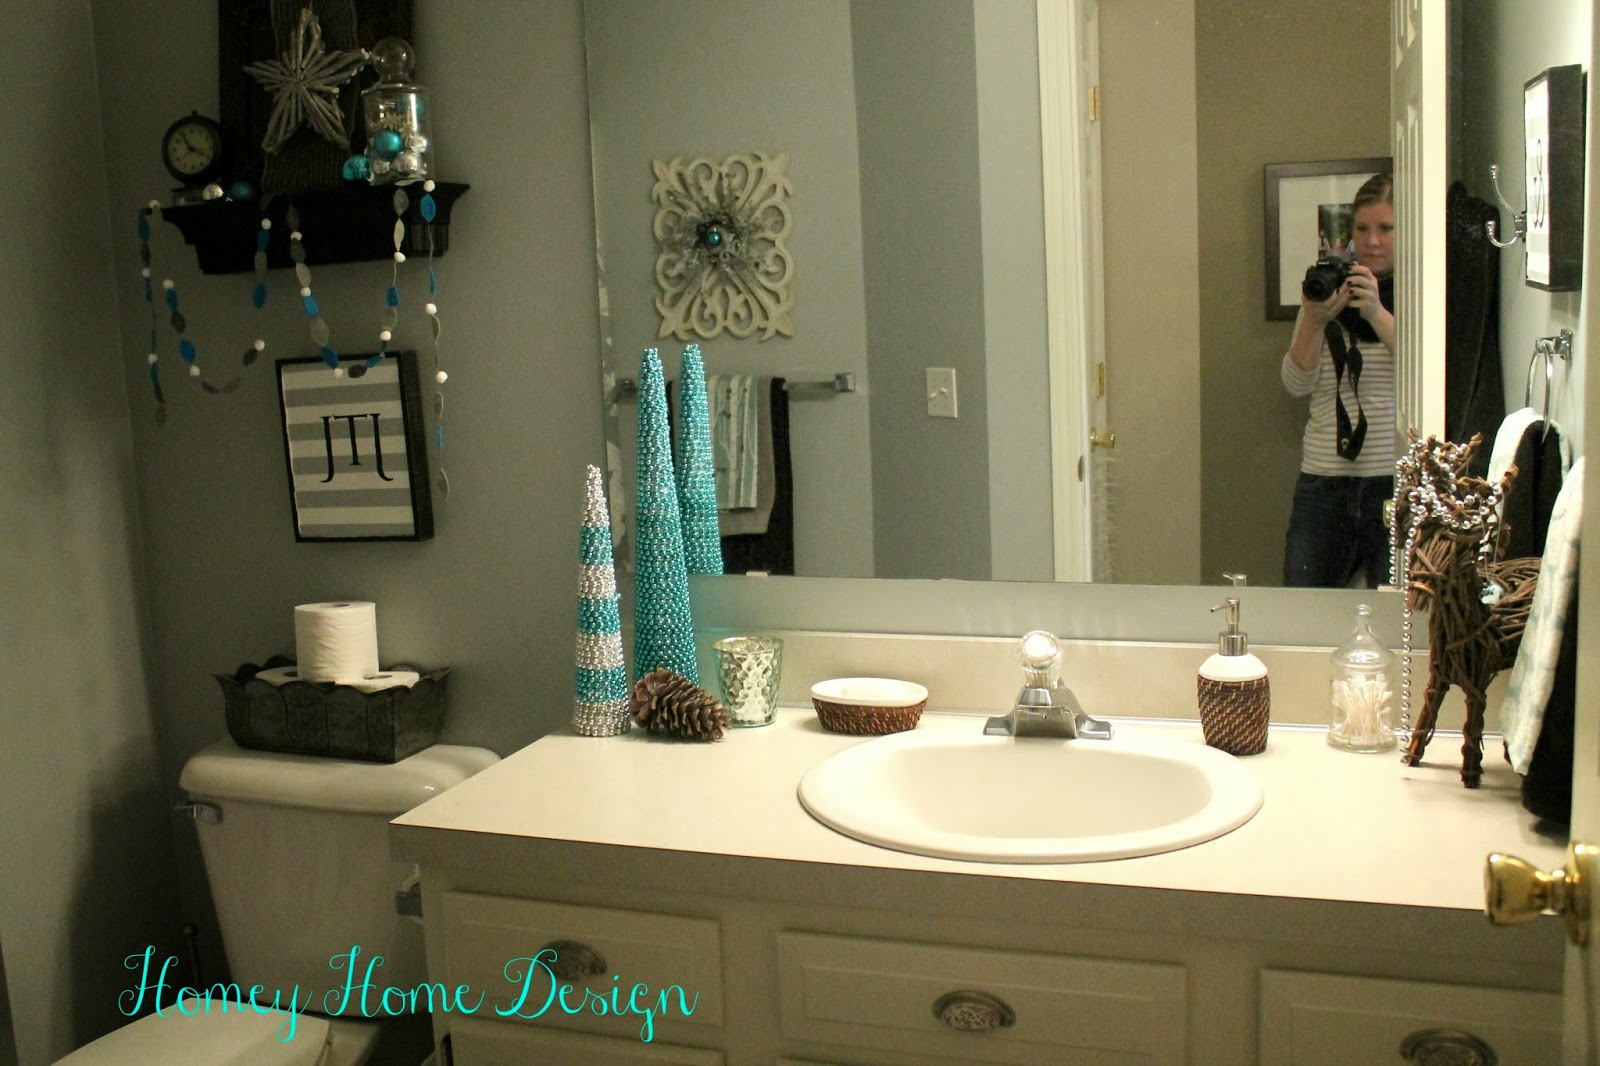 Homey home design bathroom christmas ideas for Bathroom ornament ideas